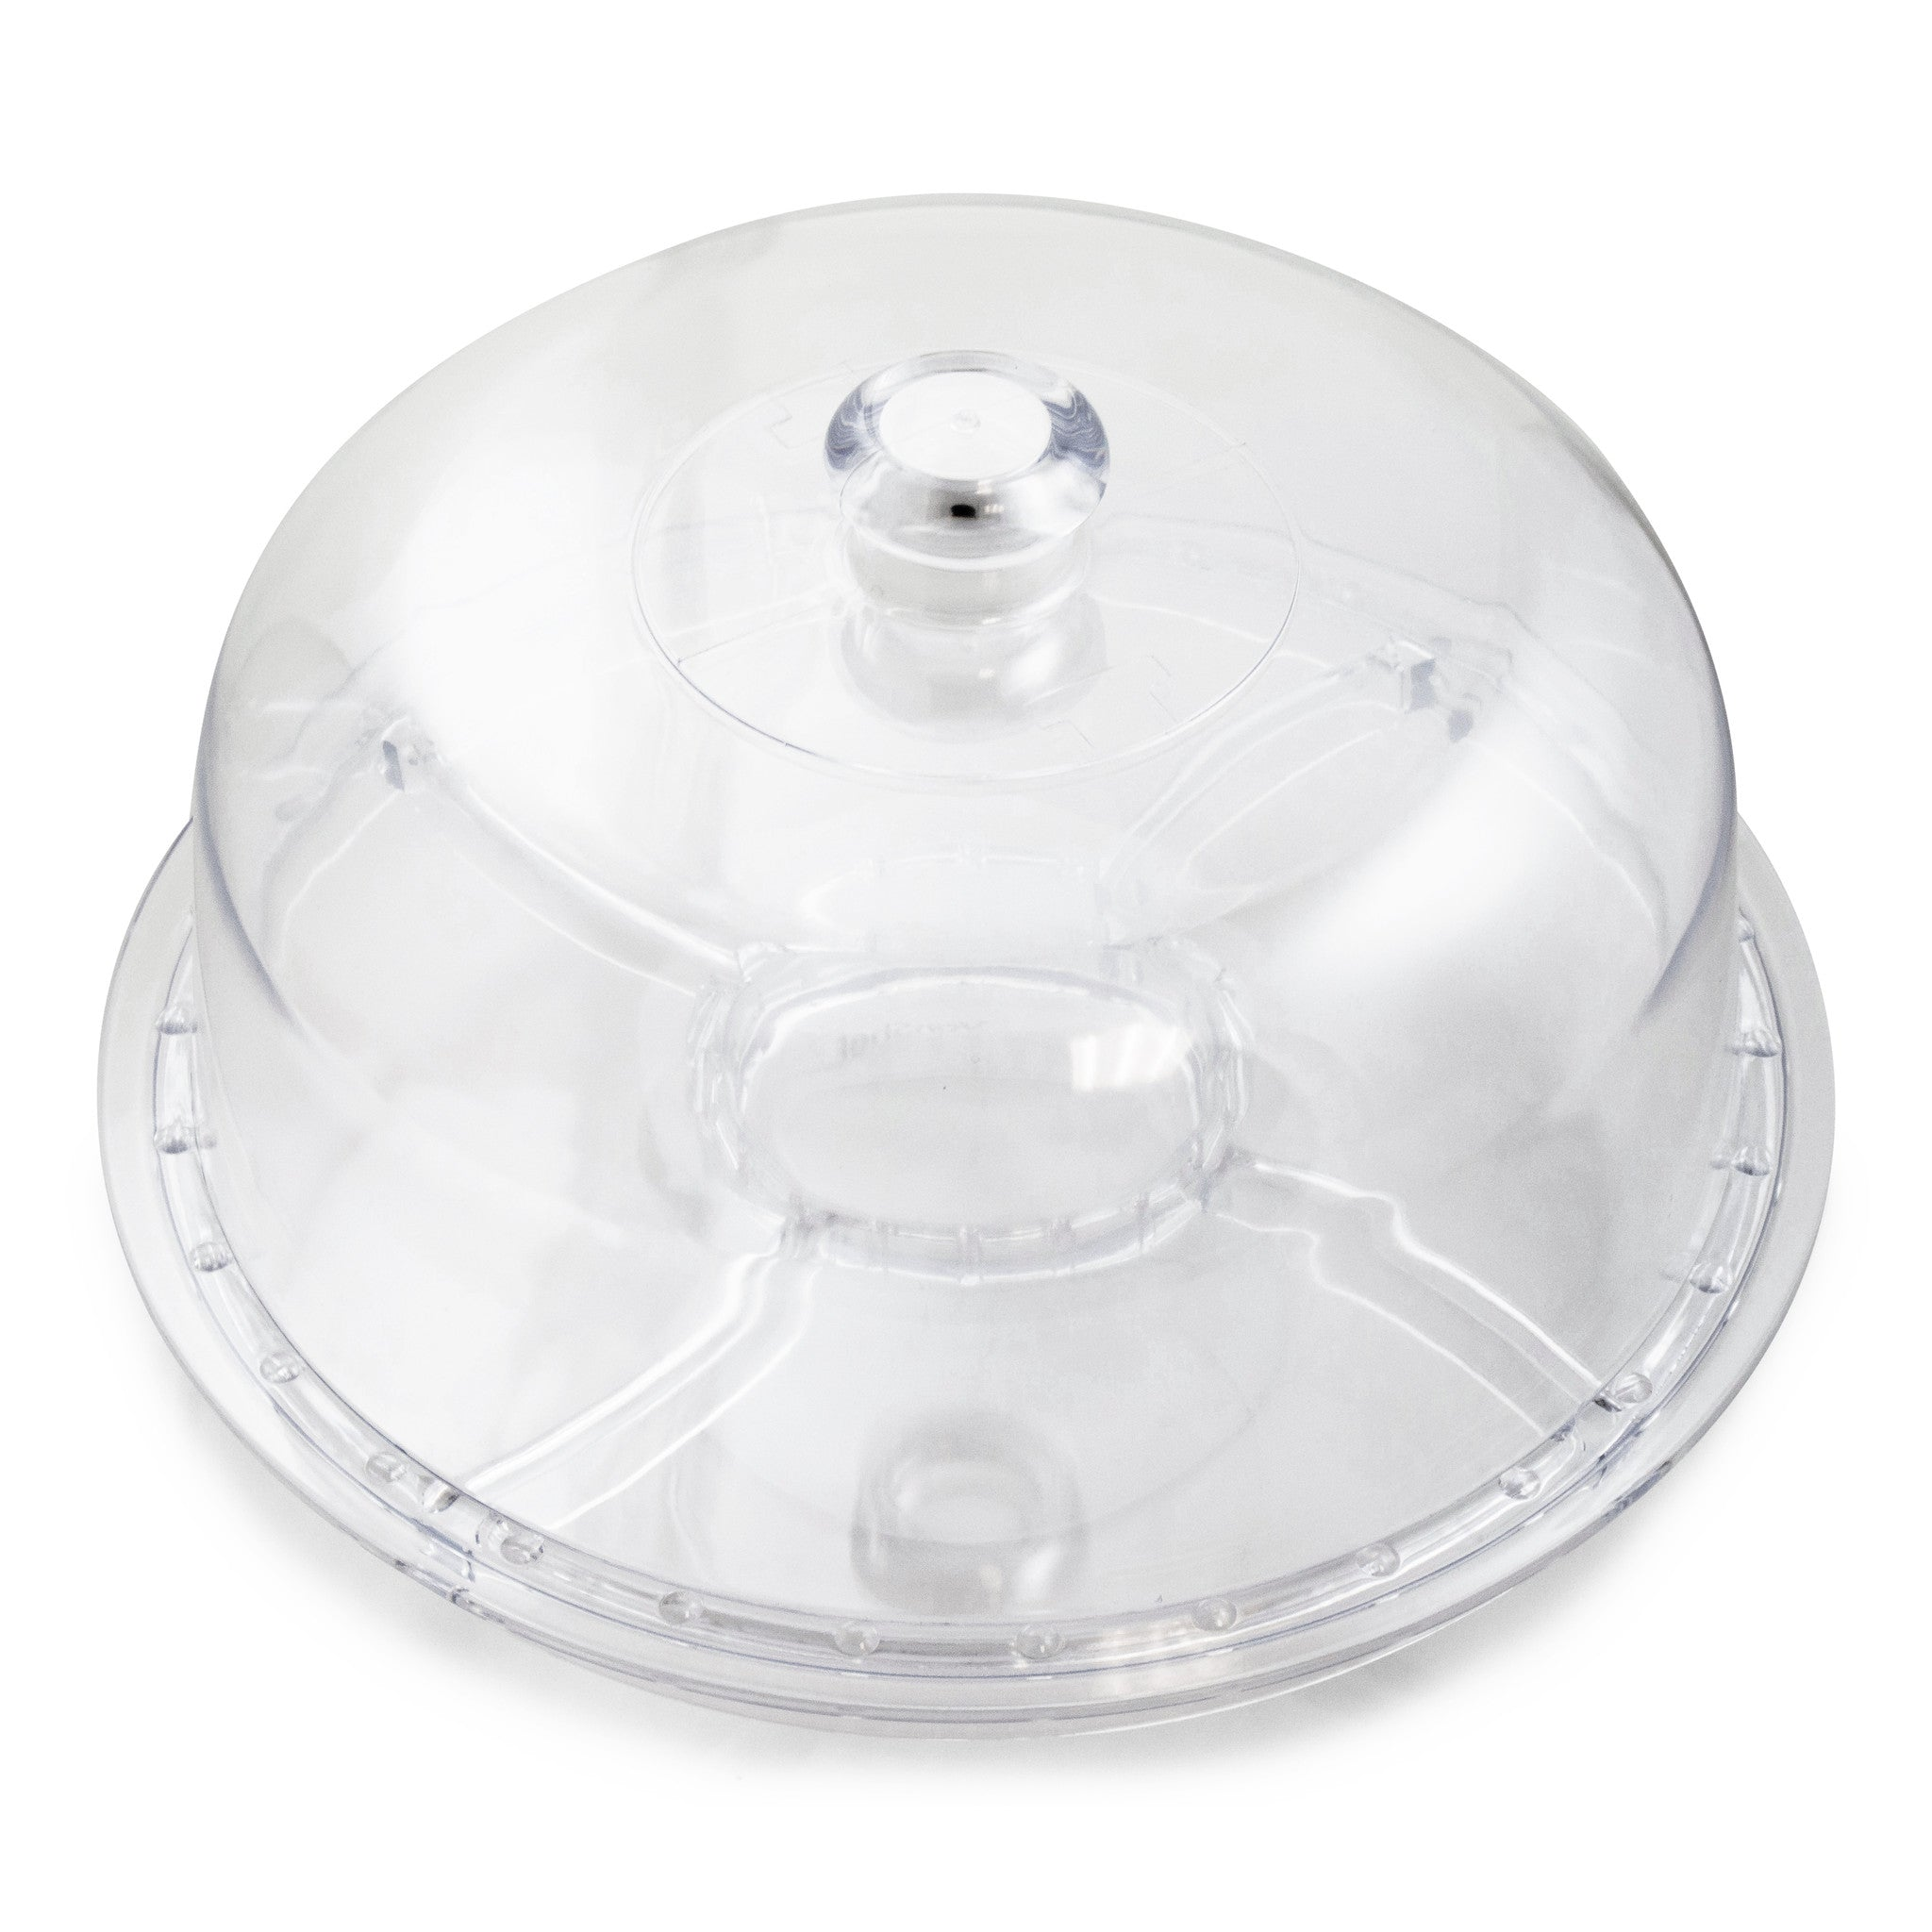 True Craftware Multifunctional (6-in-1 different possibilities) Clear Acrylic Cake Stand - Cake Plate with Dome Punch Bowl and Serving Platter Stand  sc 1 st  True Craftware & True Craftware Multifunctional (6-in-1 different possibilities ...